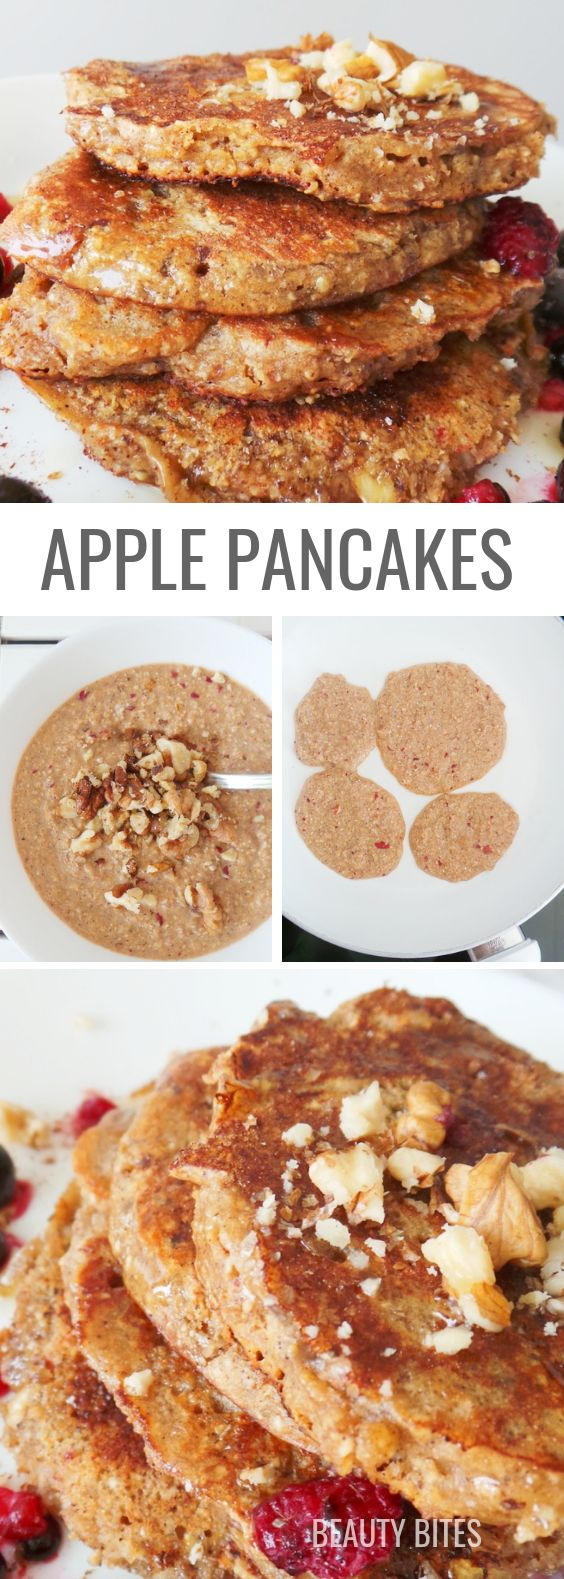 Apple Pancakes With Oats – Healthy & Easy Breakfast